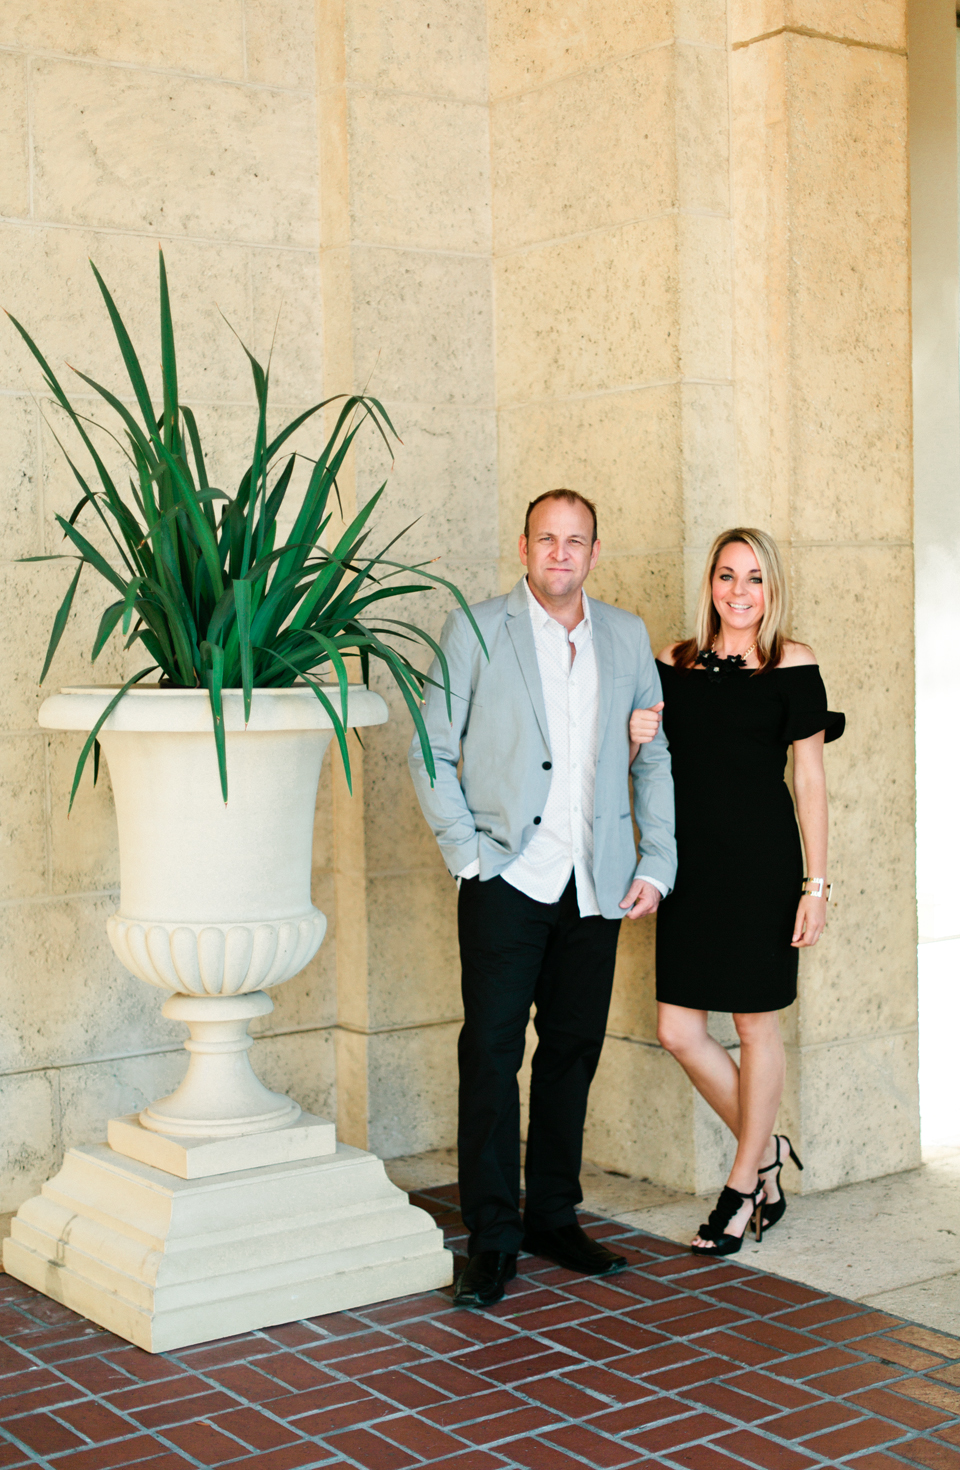 Image of a couple standing in front of the Museum of Fine Arts downtown St. Pete.  There is a large urn with greenery and cream stone exterior.